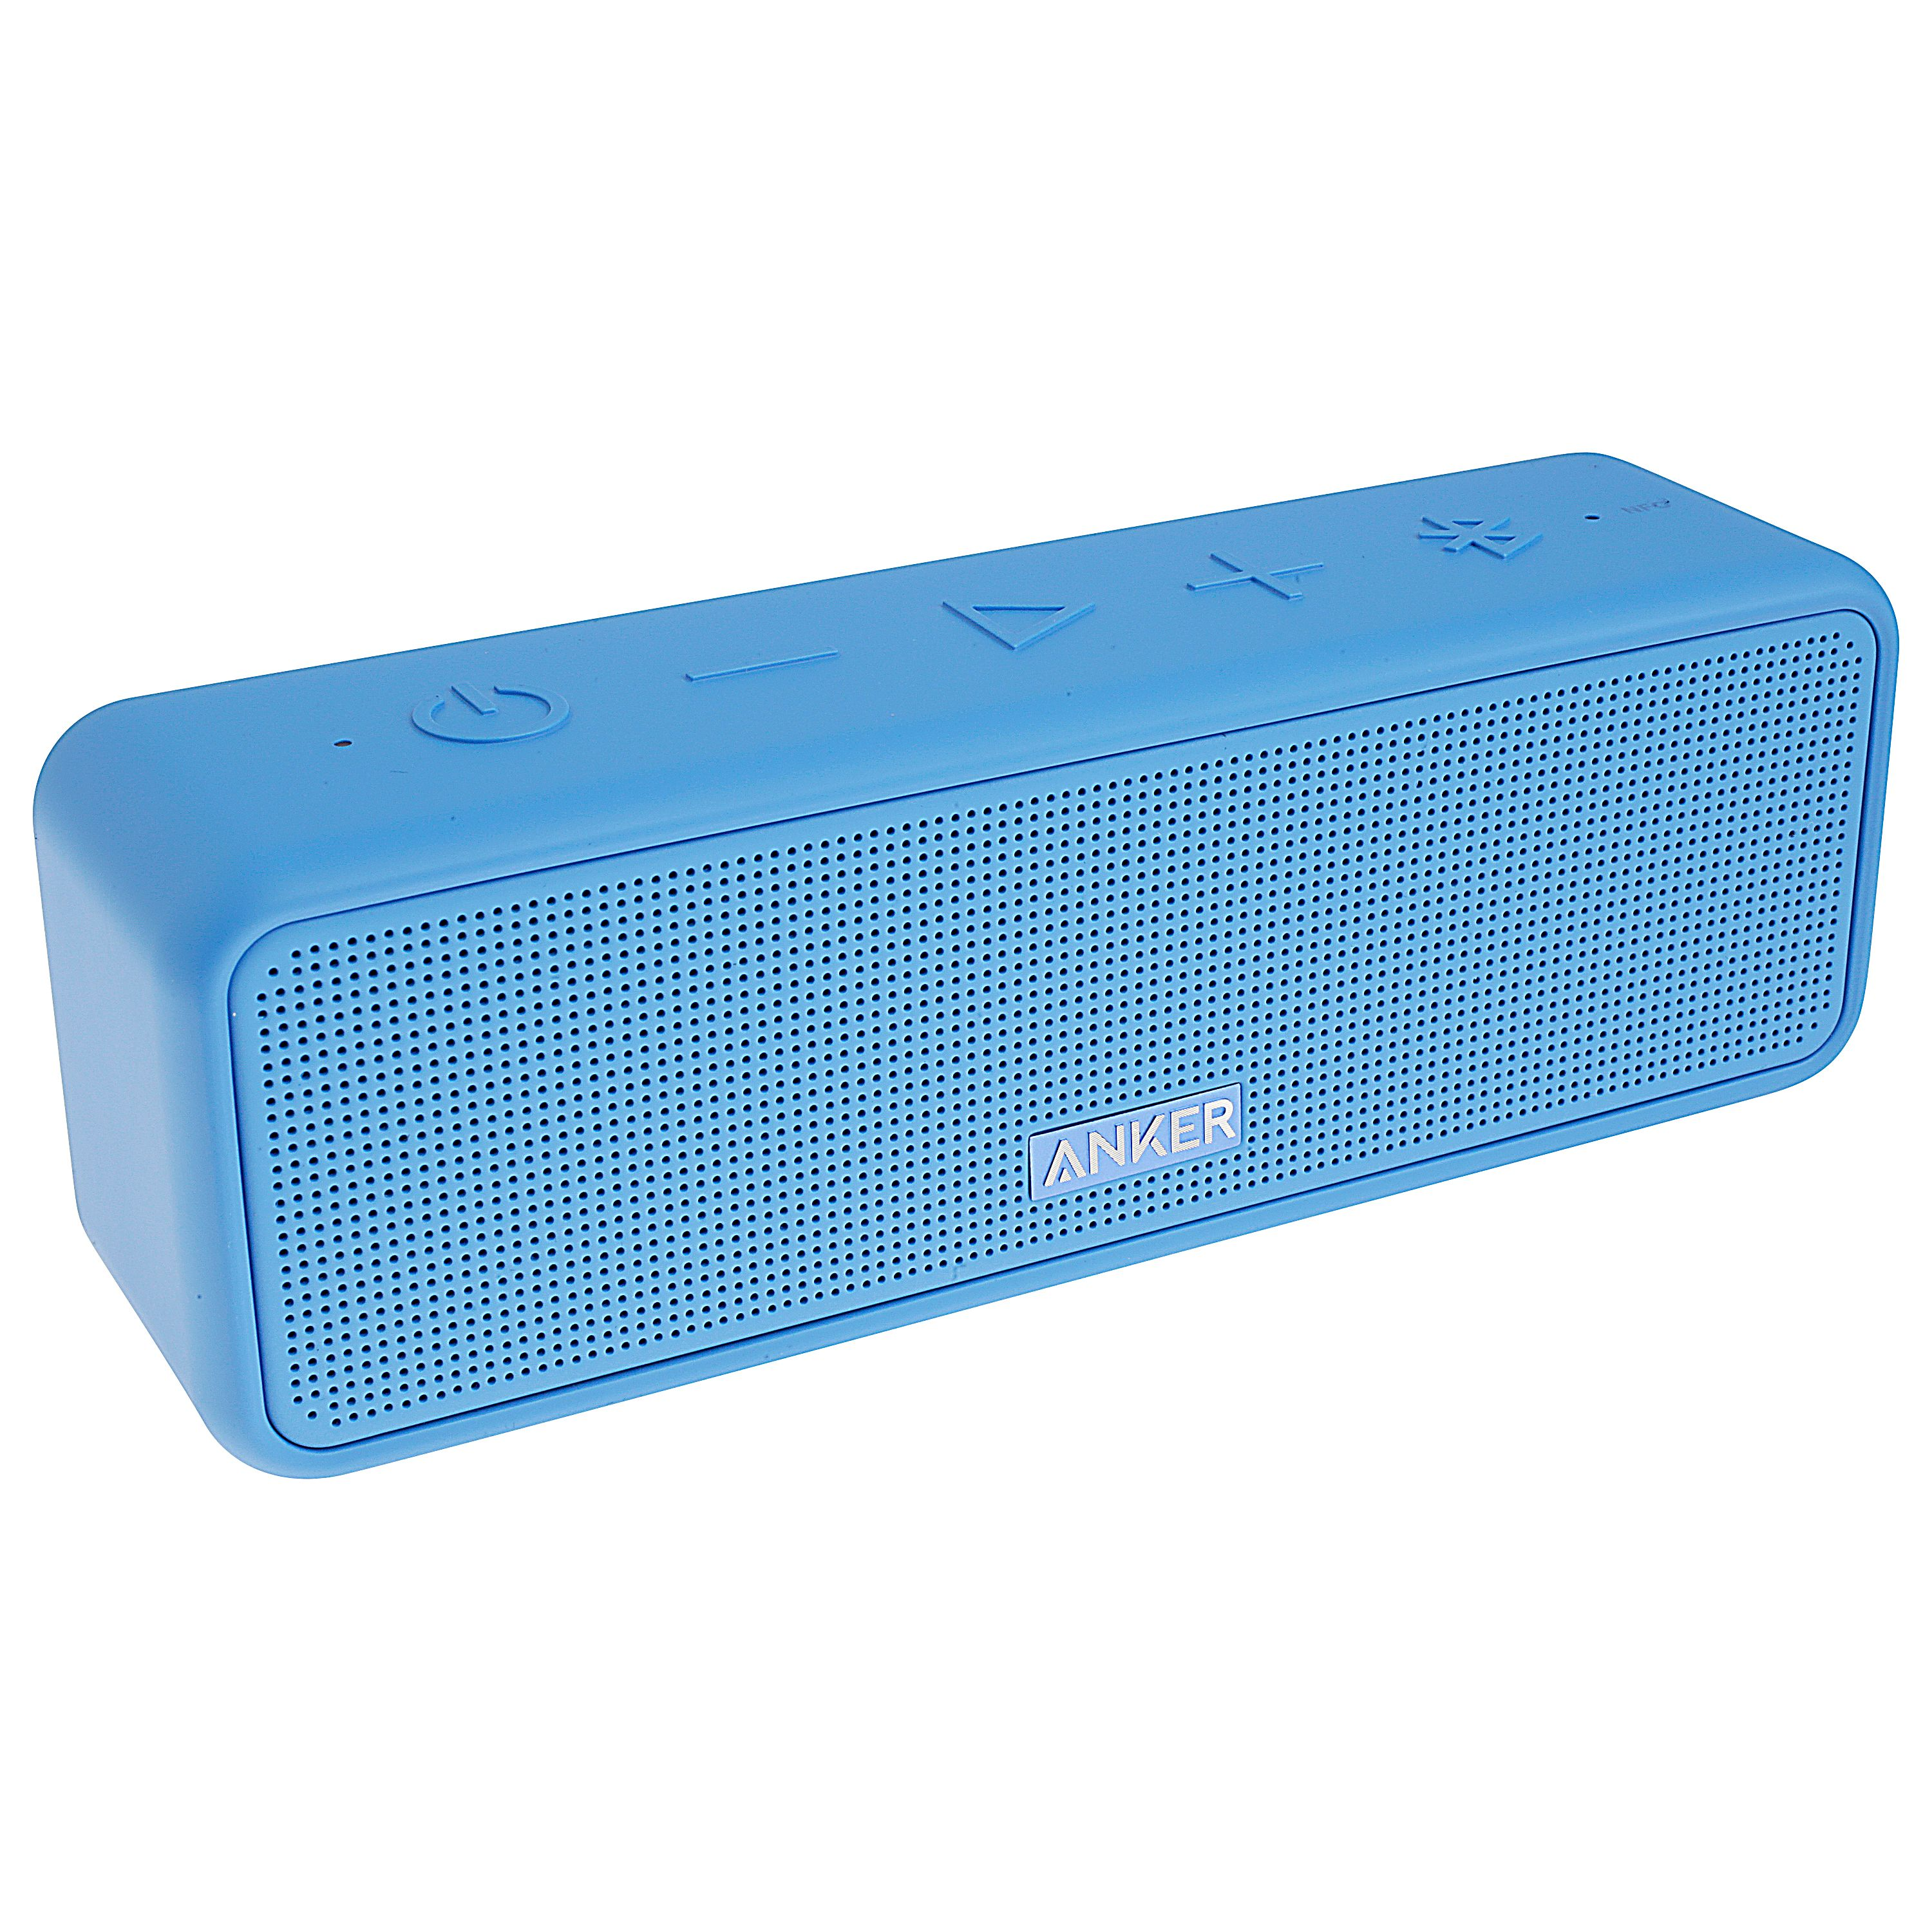 Anker SoundCore Select Portable Bluetooth Speaker Blue with Loud Stereo Sound, Rich Bass, 24-Hour Playtime, 66 ft Bluetooth Range, Built-In Mic. Perfect Wireless Speaker for iPhone, Samsung and more